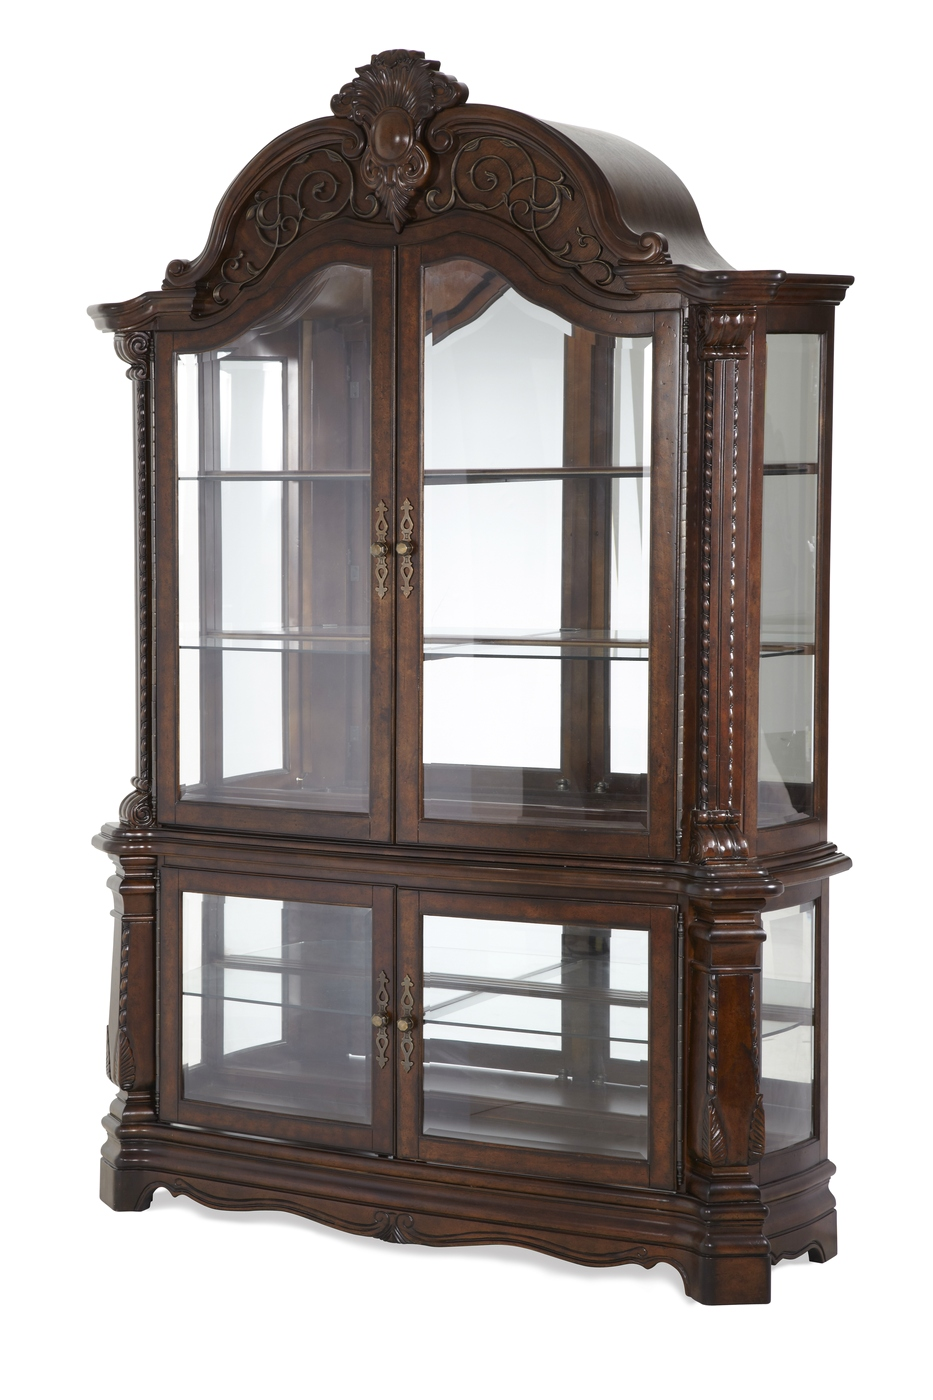 michael amini traditional style windsor court curio. Black Bedroom Furniture Sets. Home Design Ideas